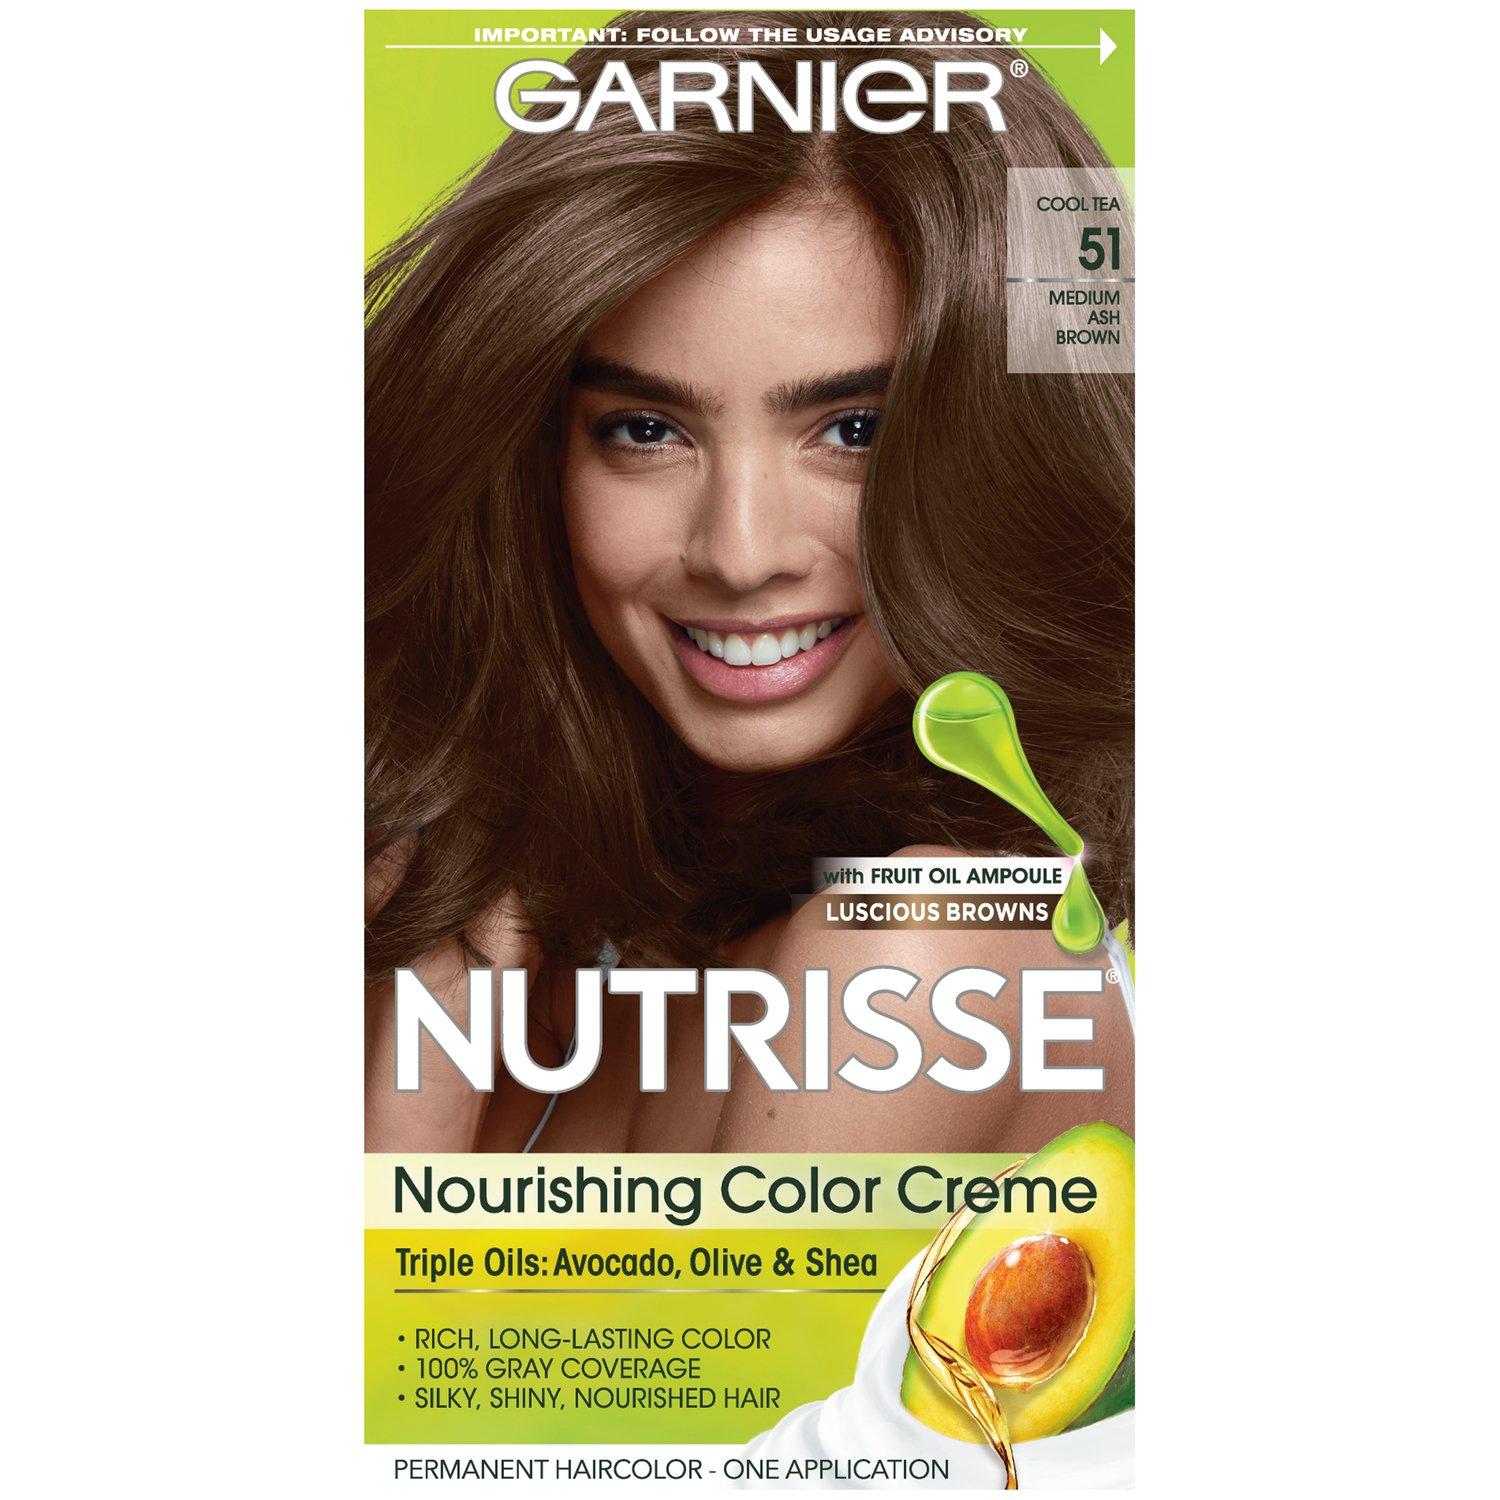 Amazon Garnier Nutrisse Nourishing Hair Color Creme 51 Medium